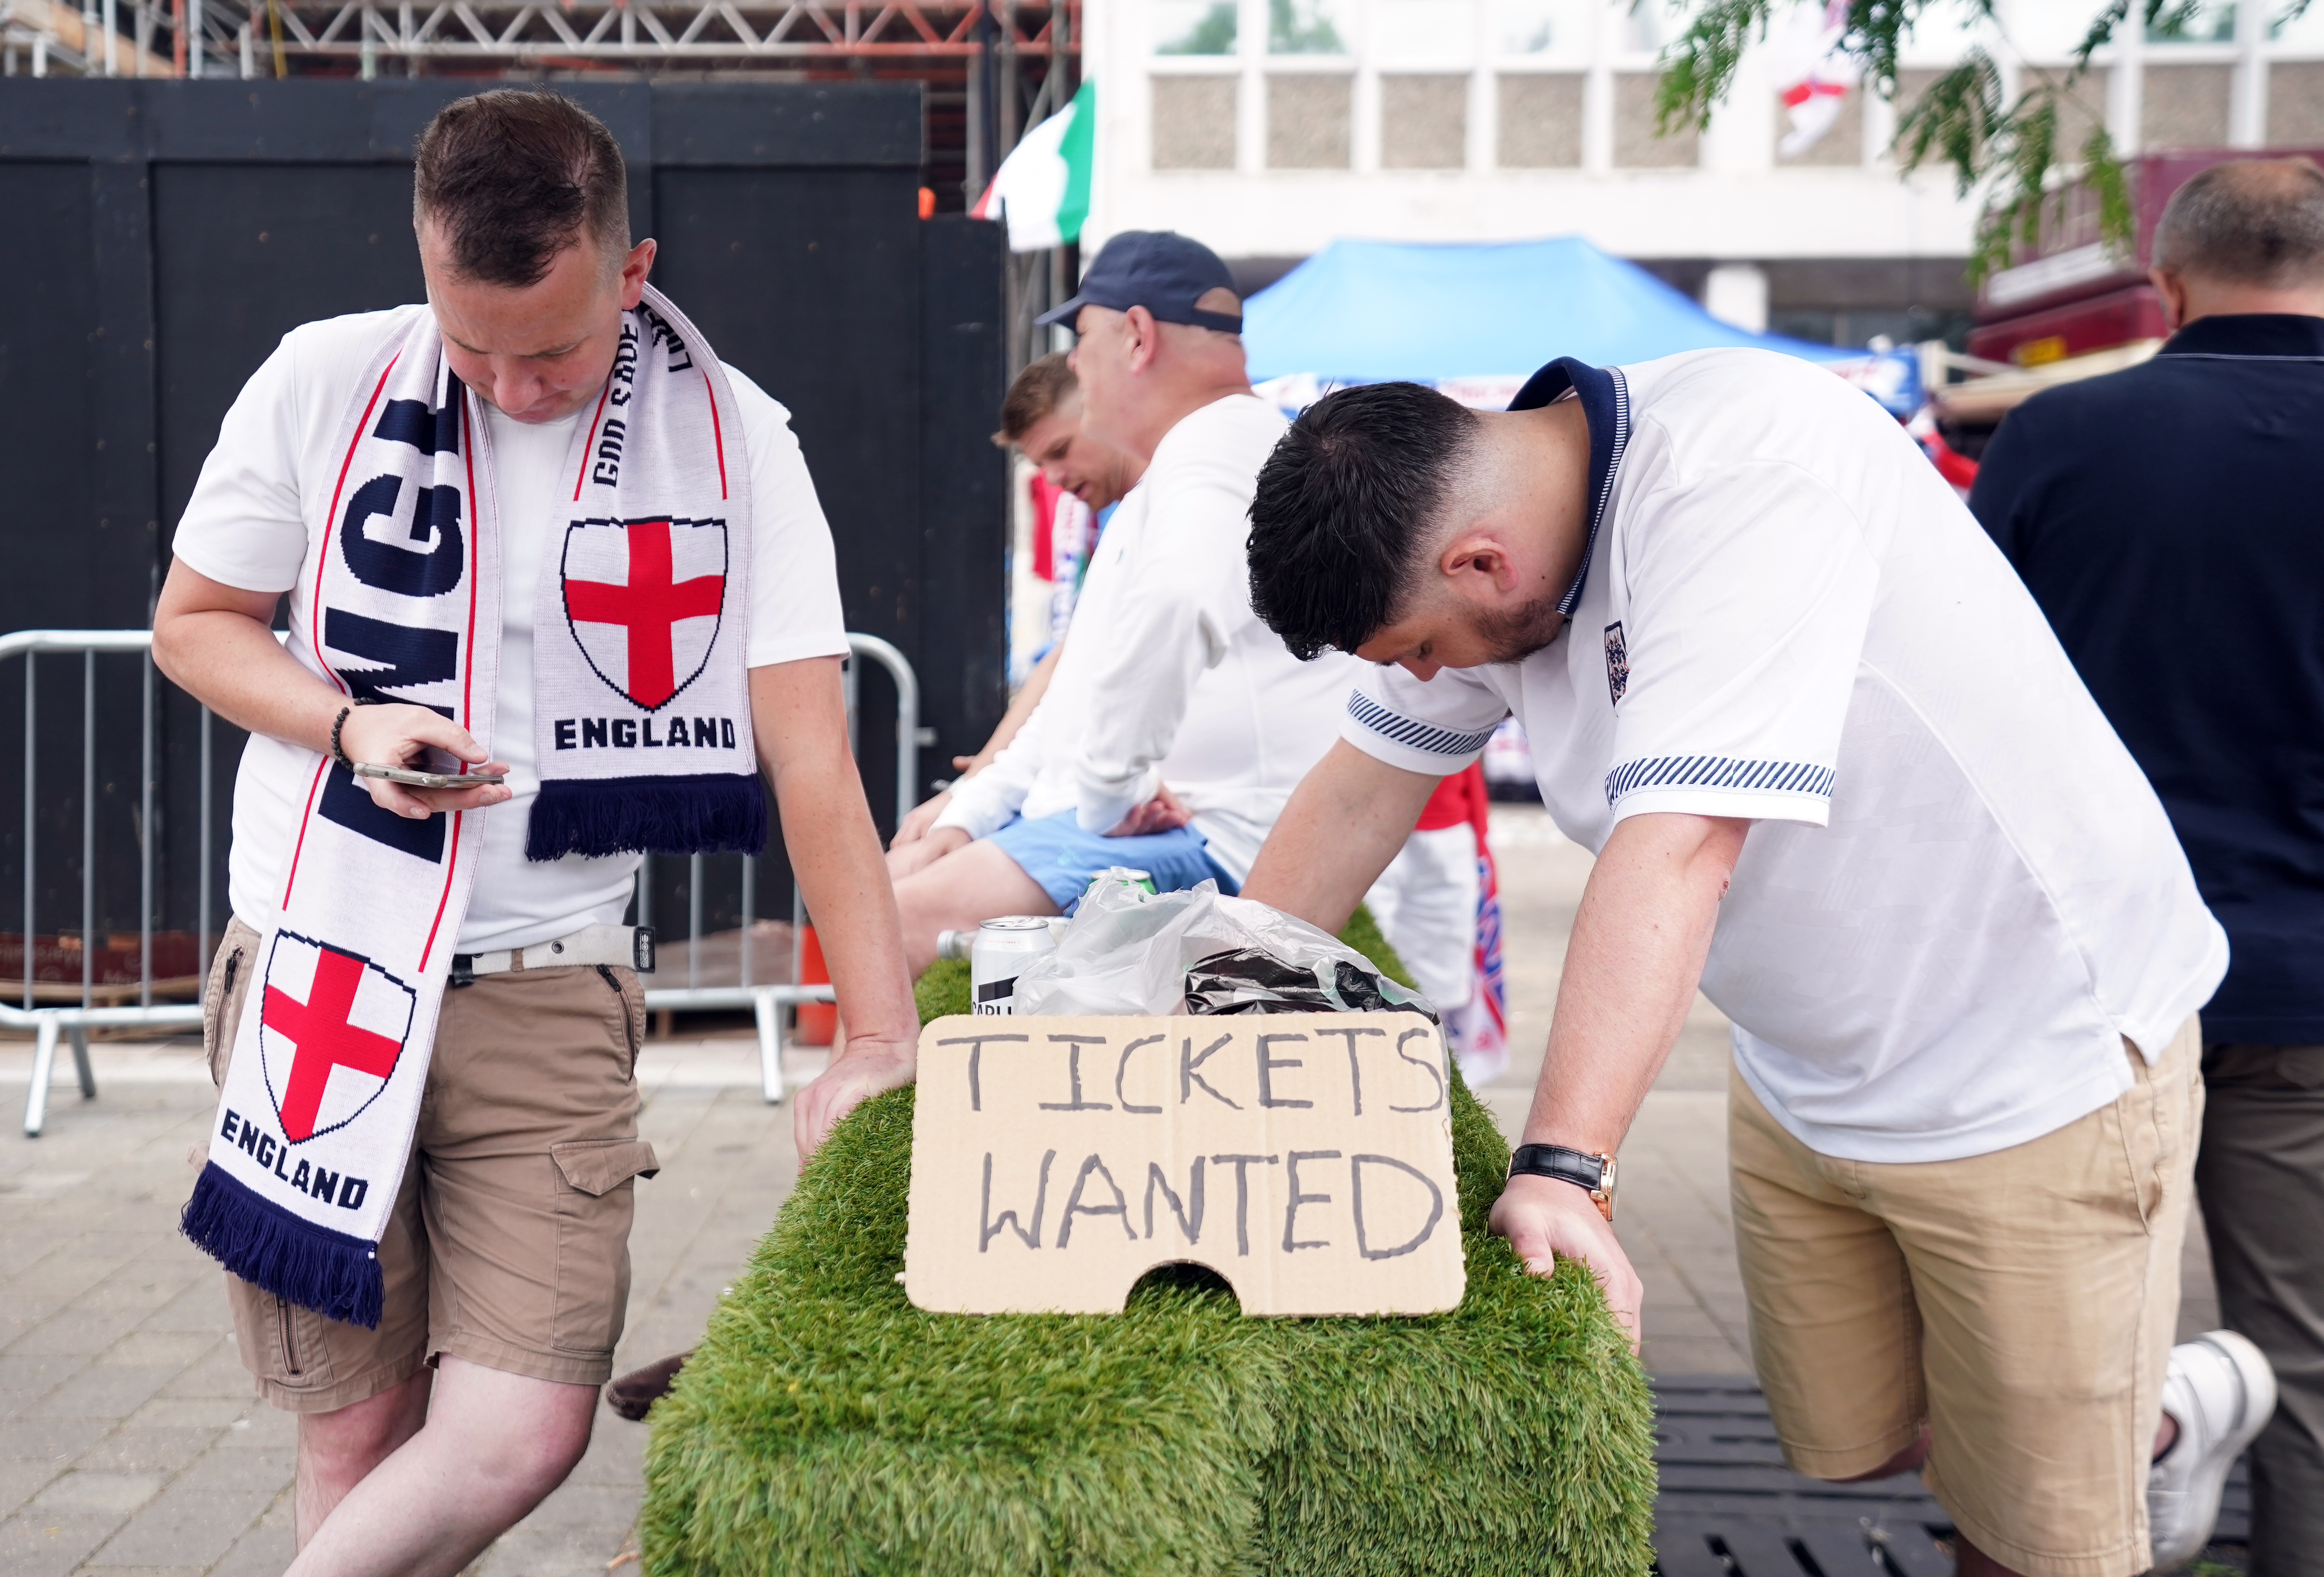 England fans looking for tickets outside the ground